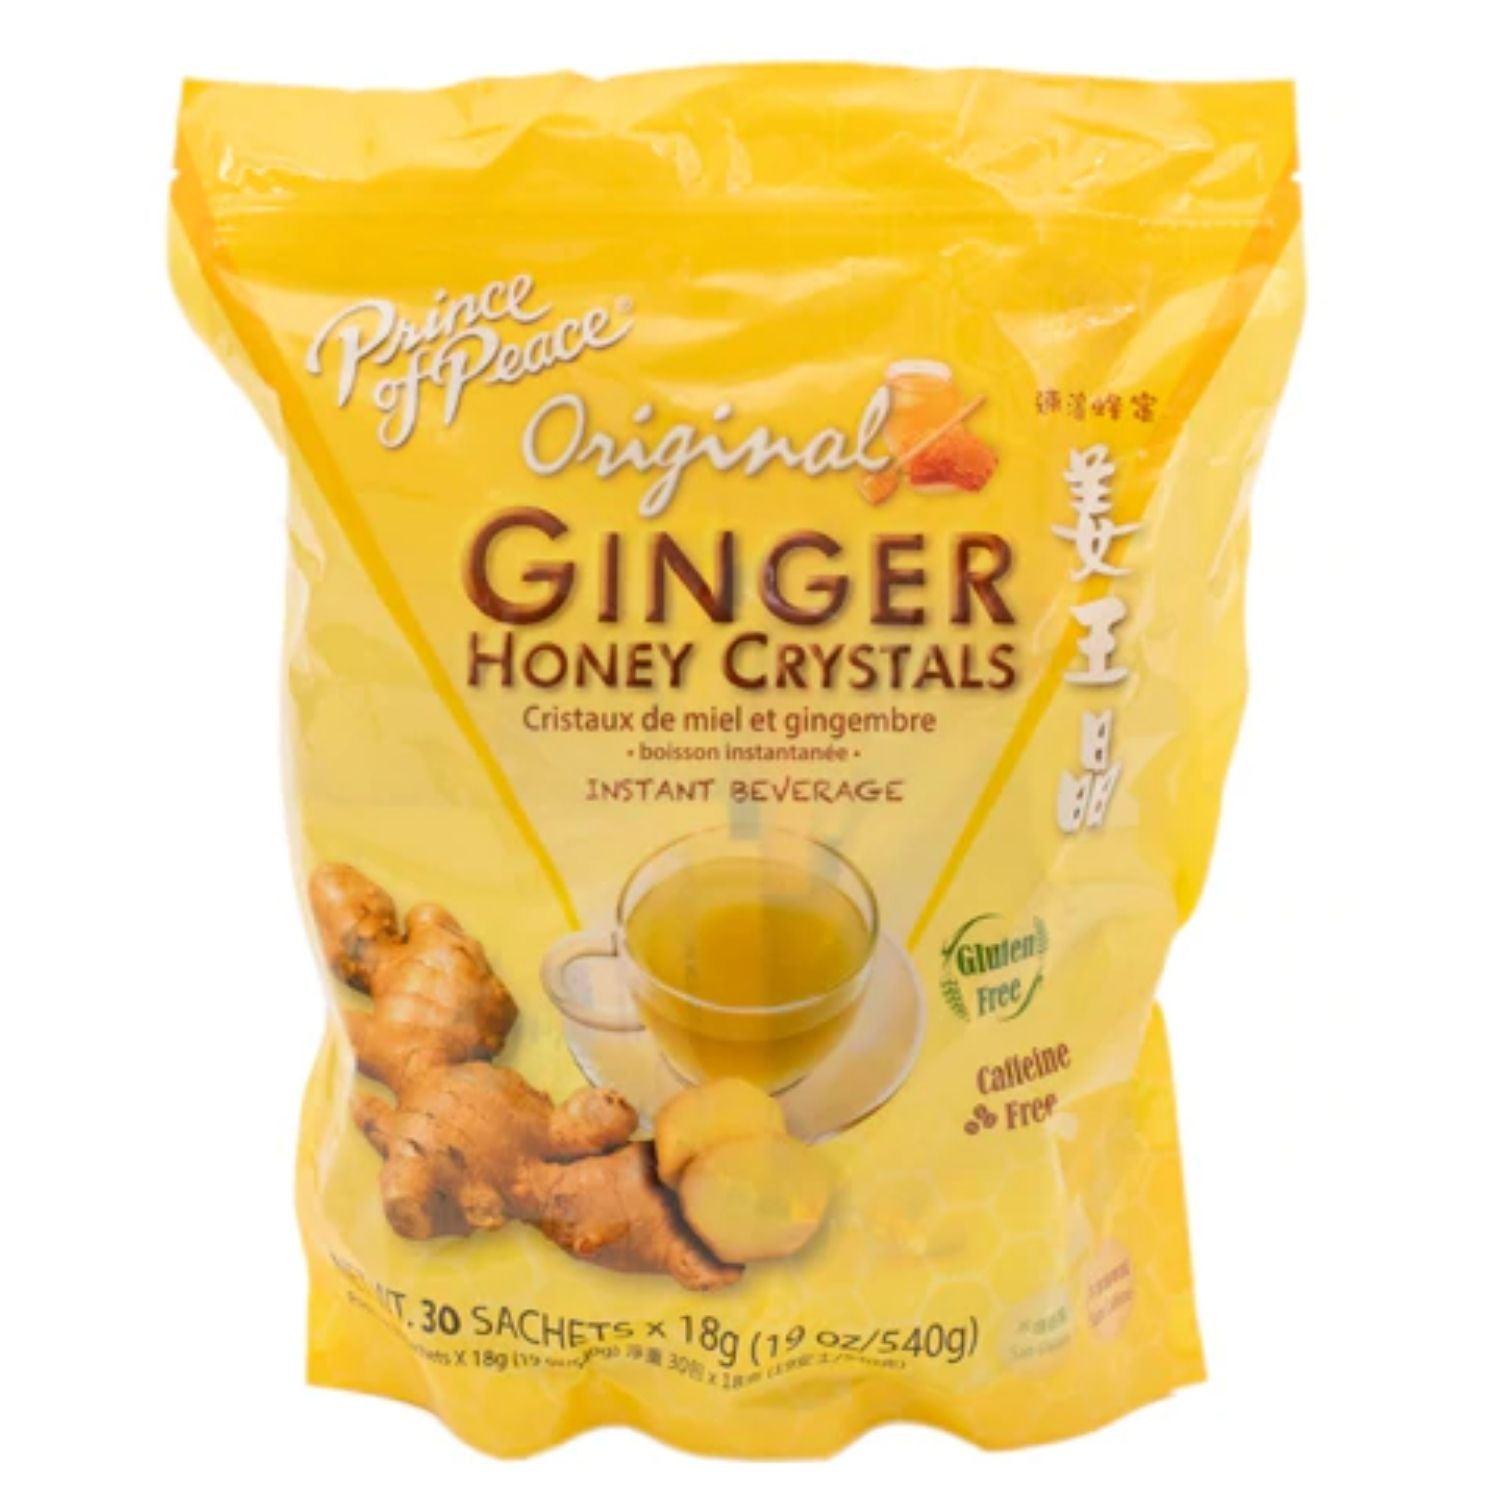 Prince of Peace Original Ginger Honey Crystals Instant Beverage